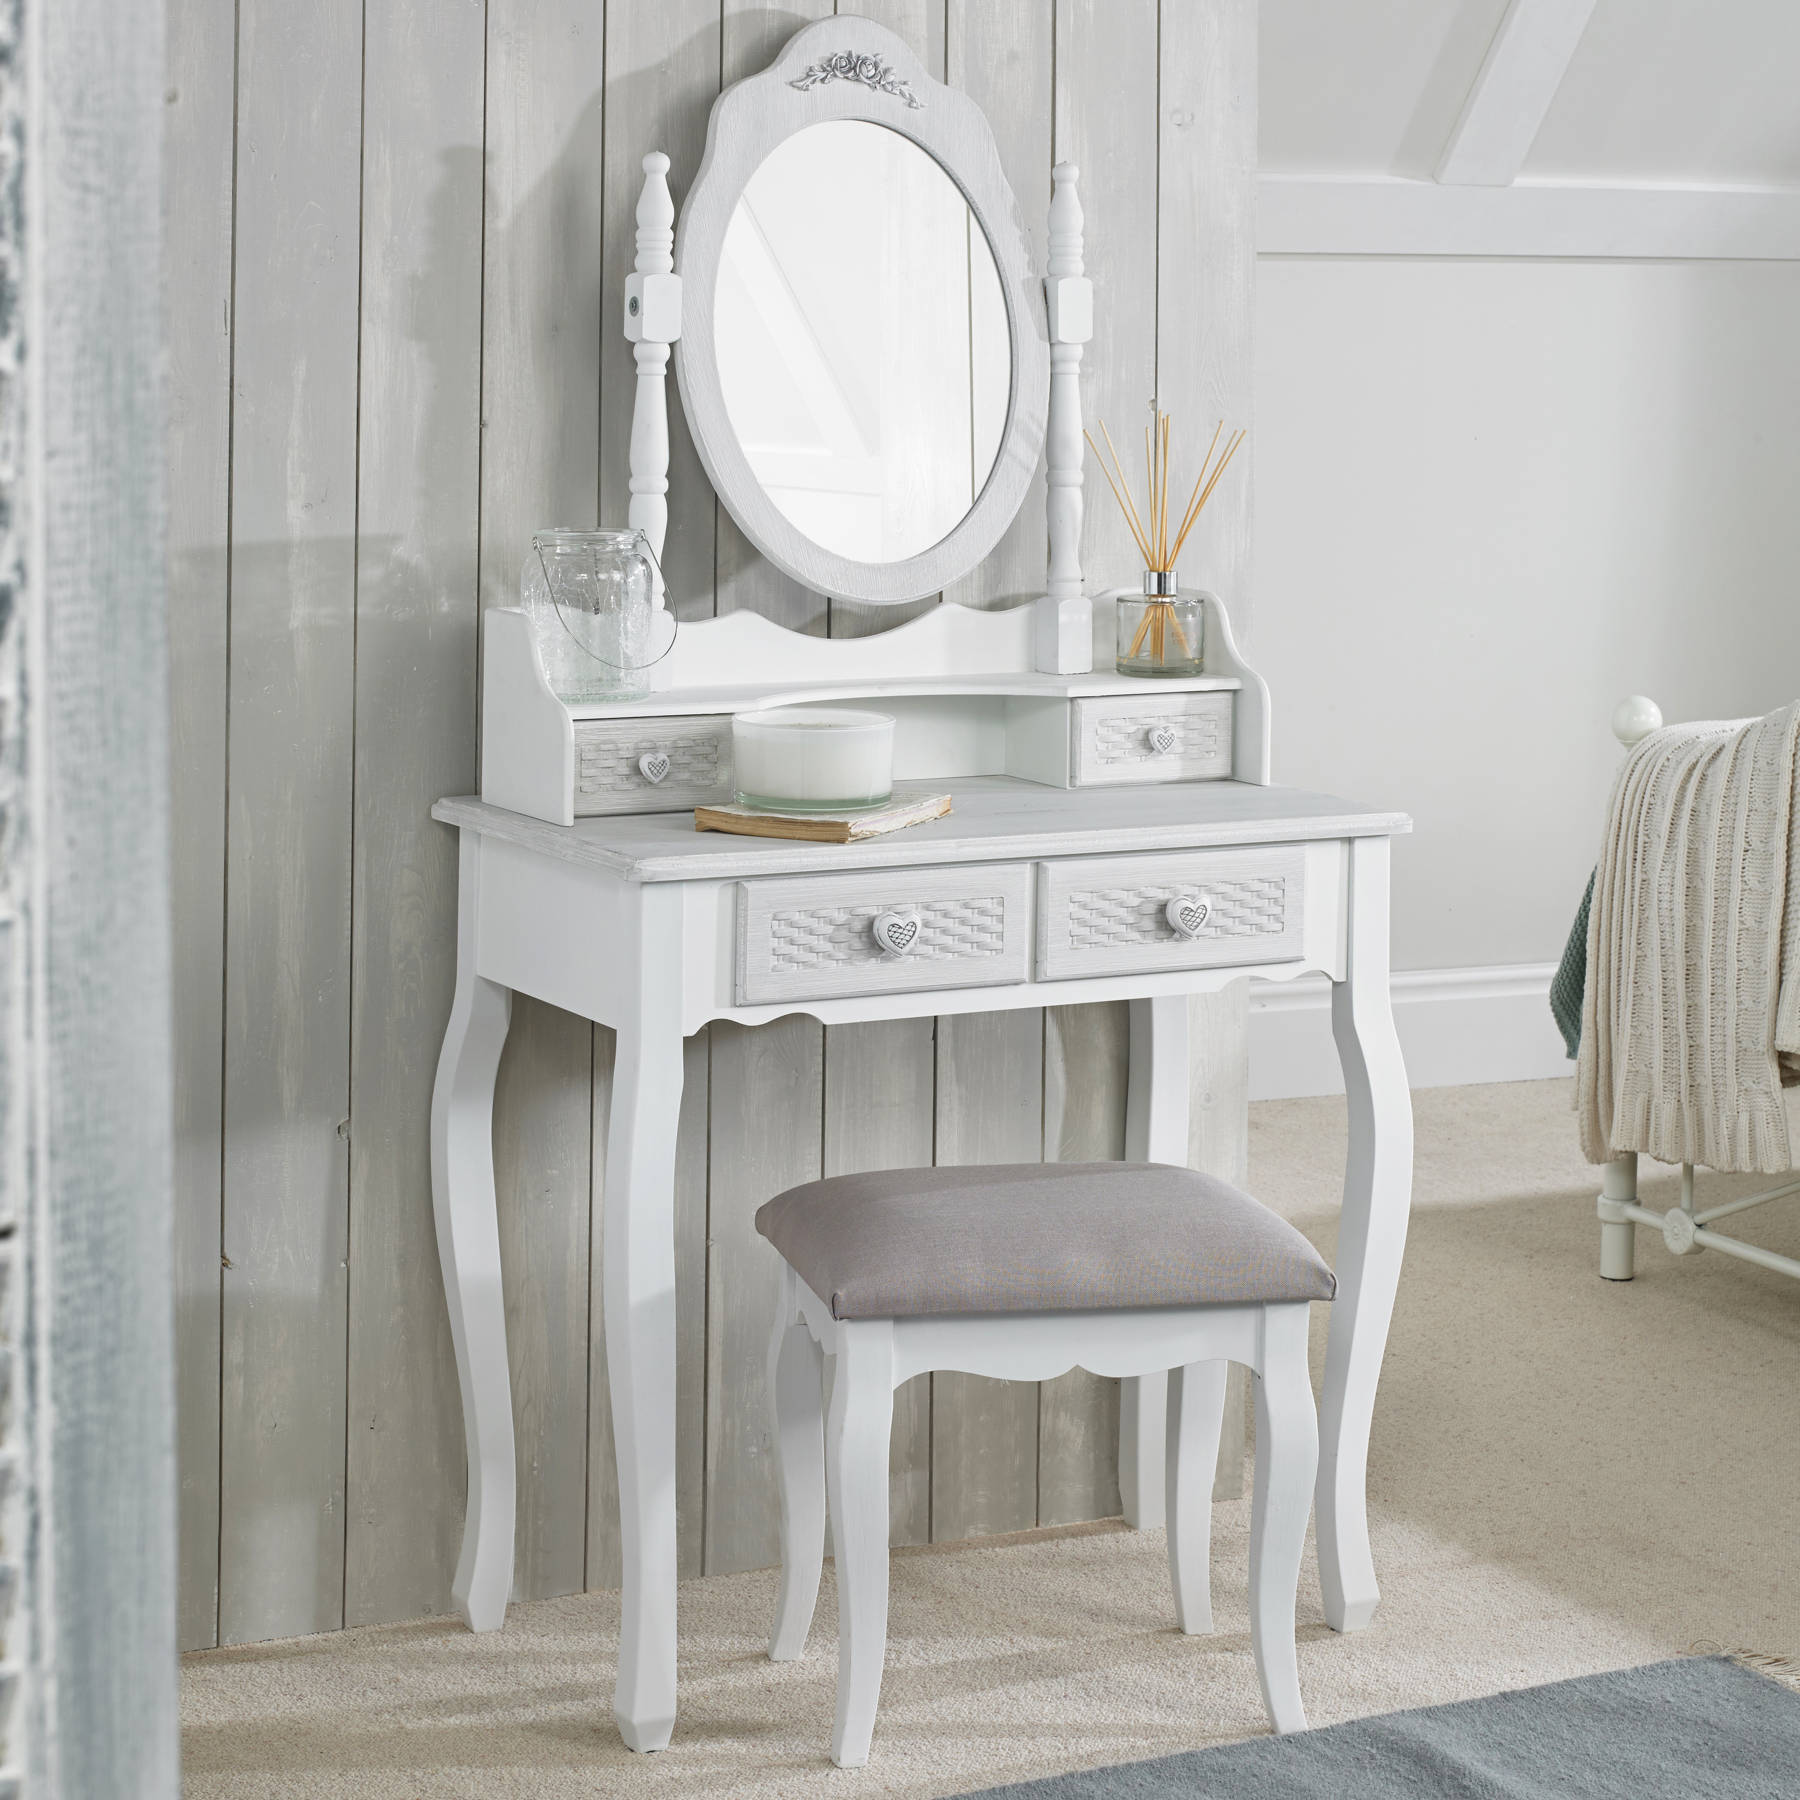 Lorient Dressing Table with Table Mirror and Stool